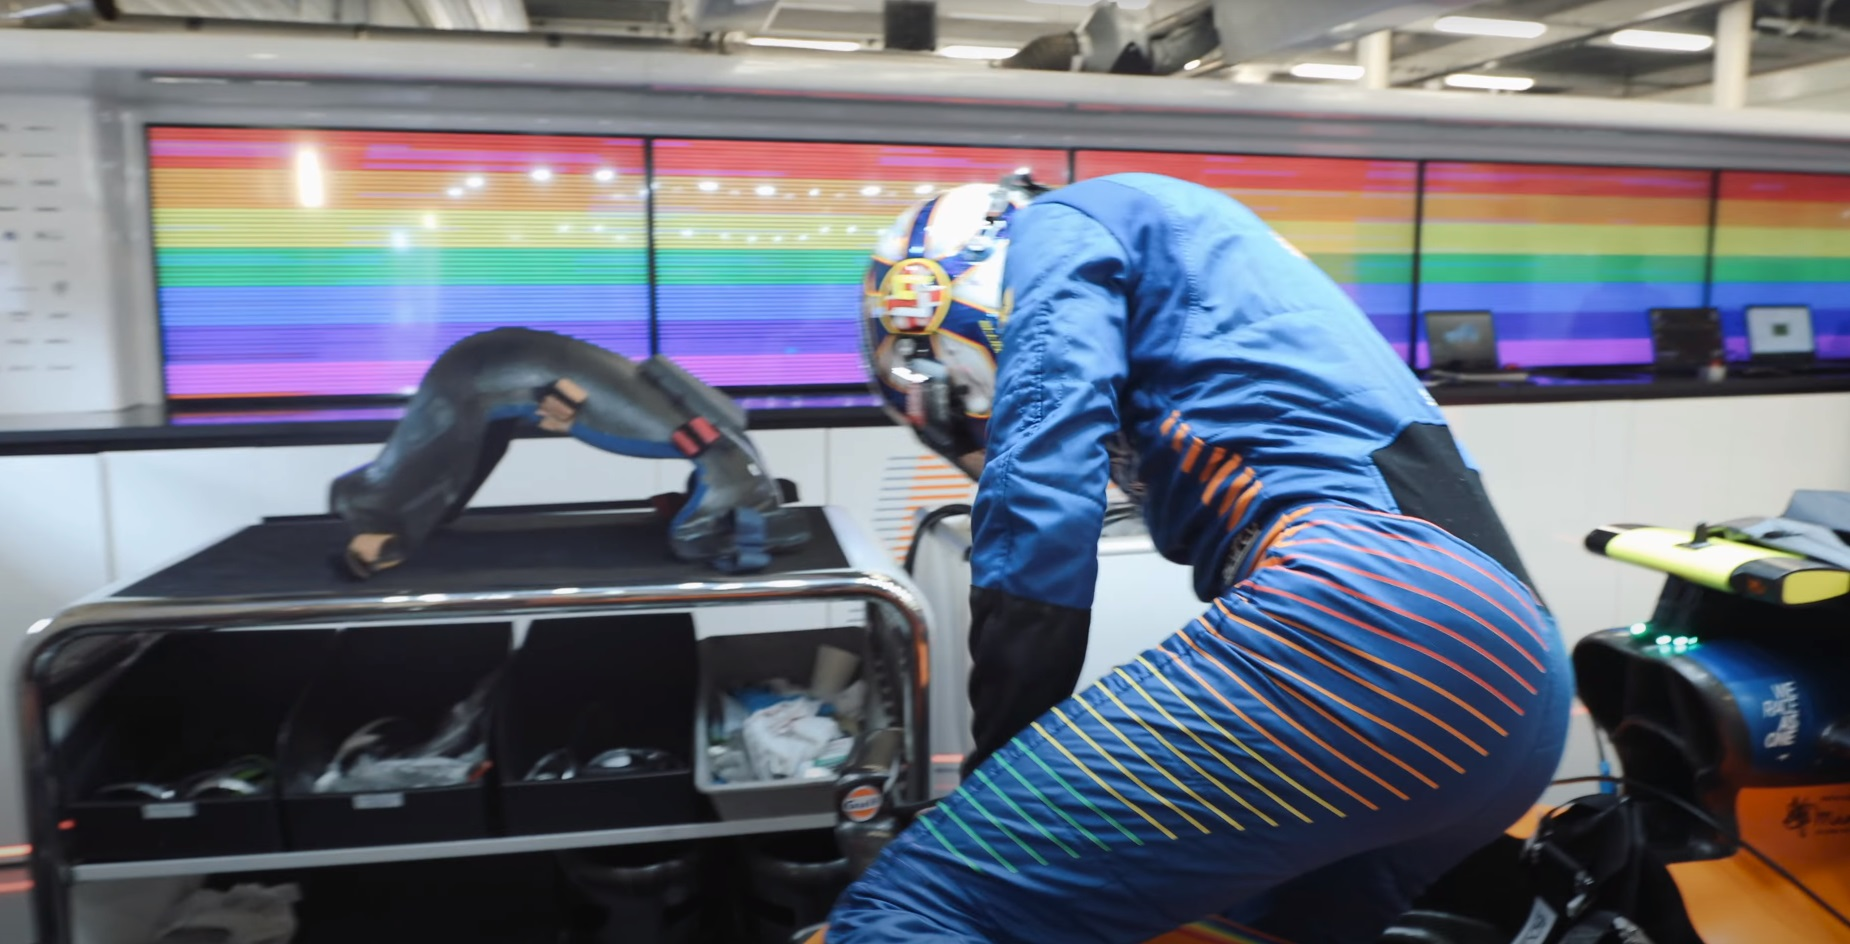 Formula 1 driver Lando Norris has donned a new rainbow-themed race suit, but apparently it's not intended to be a symbol for LGBT+ rights.